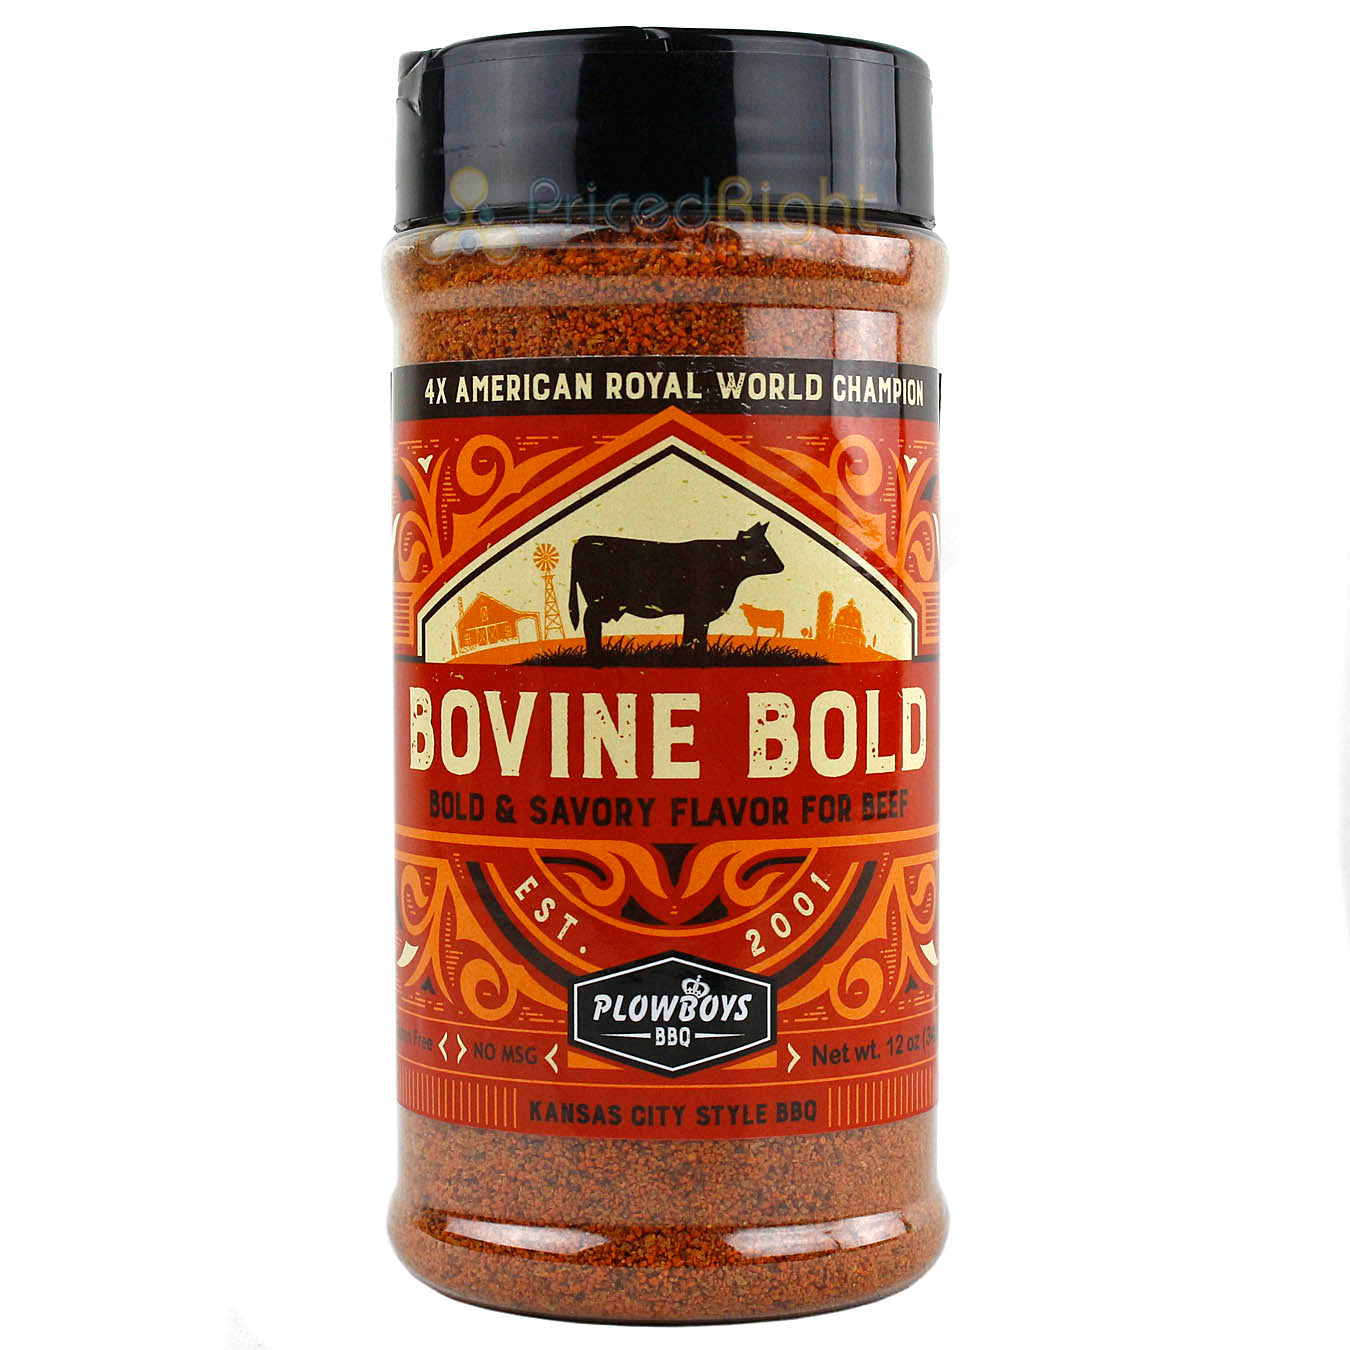 Plowboys BBQ Bovine Bold Seasoning Rub 12oz Award Winning Barbeque Meat Rub